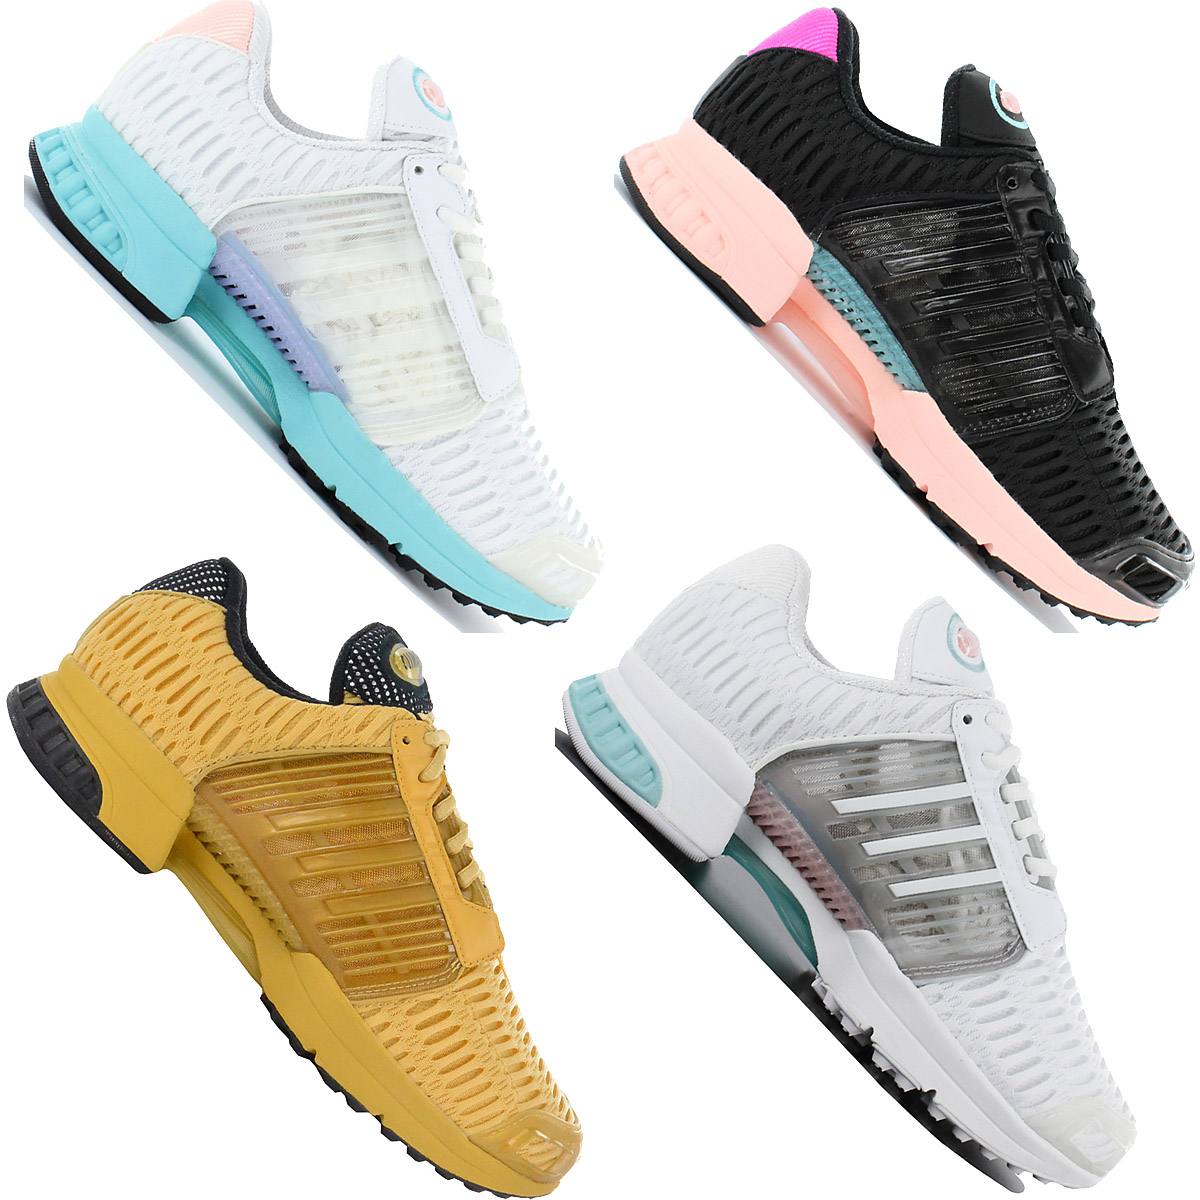 wholesale dealer 650b6 0fef7 Details about Adidas Climacool 1 W Ladies Shoes Sneaker Shoes Running Sport  Shoes New